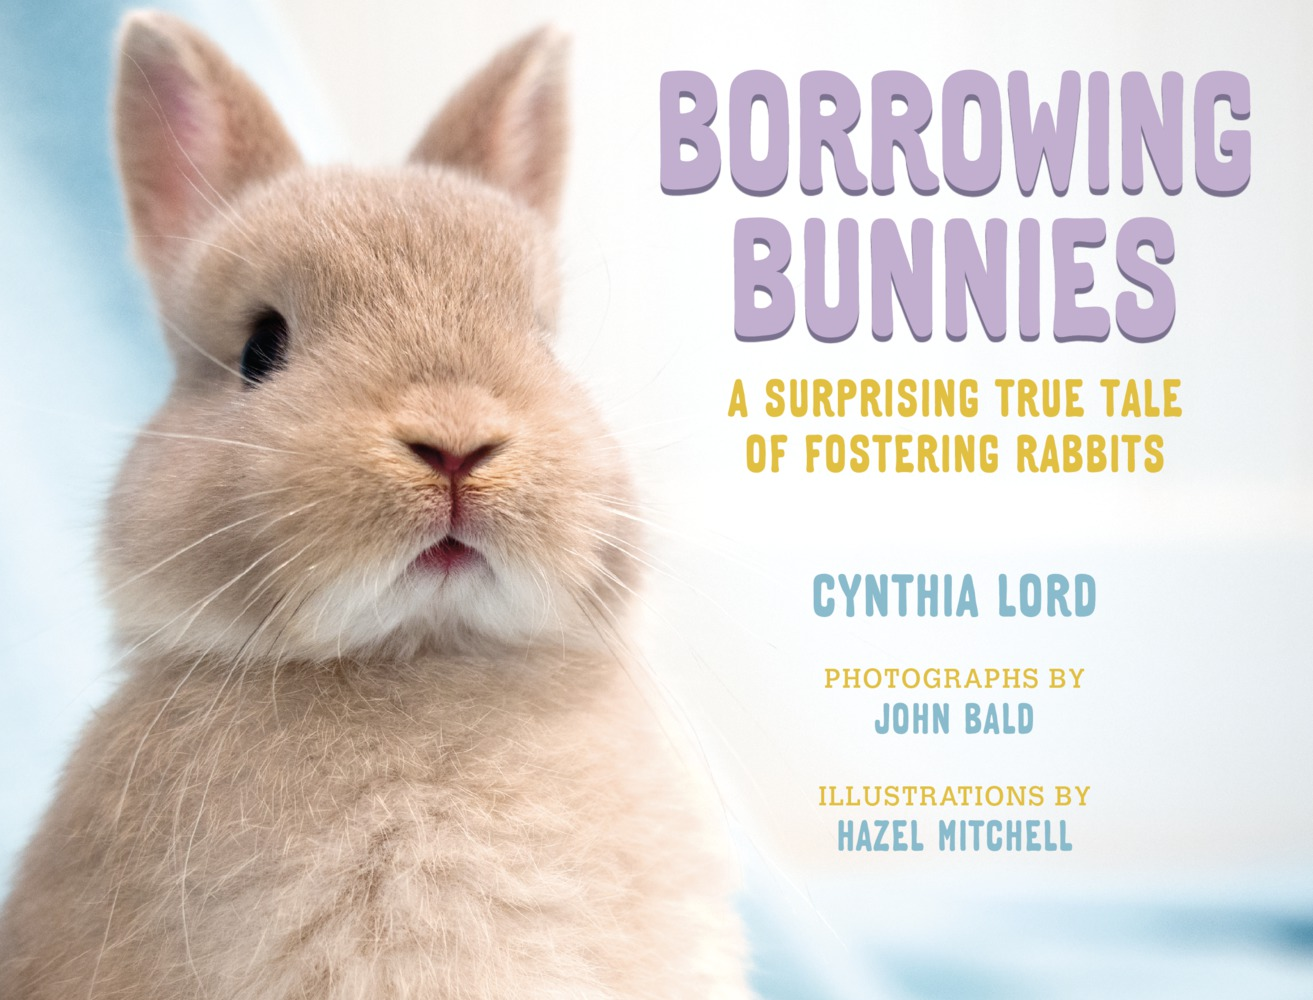 Borrowing Bunnies Image.jpg